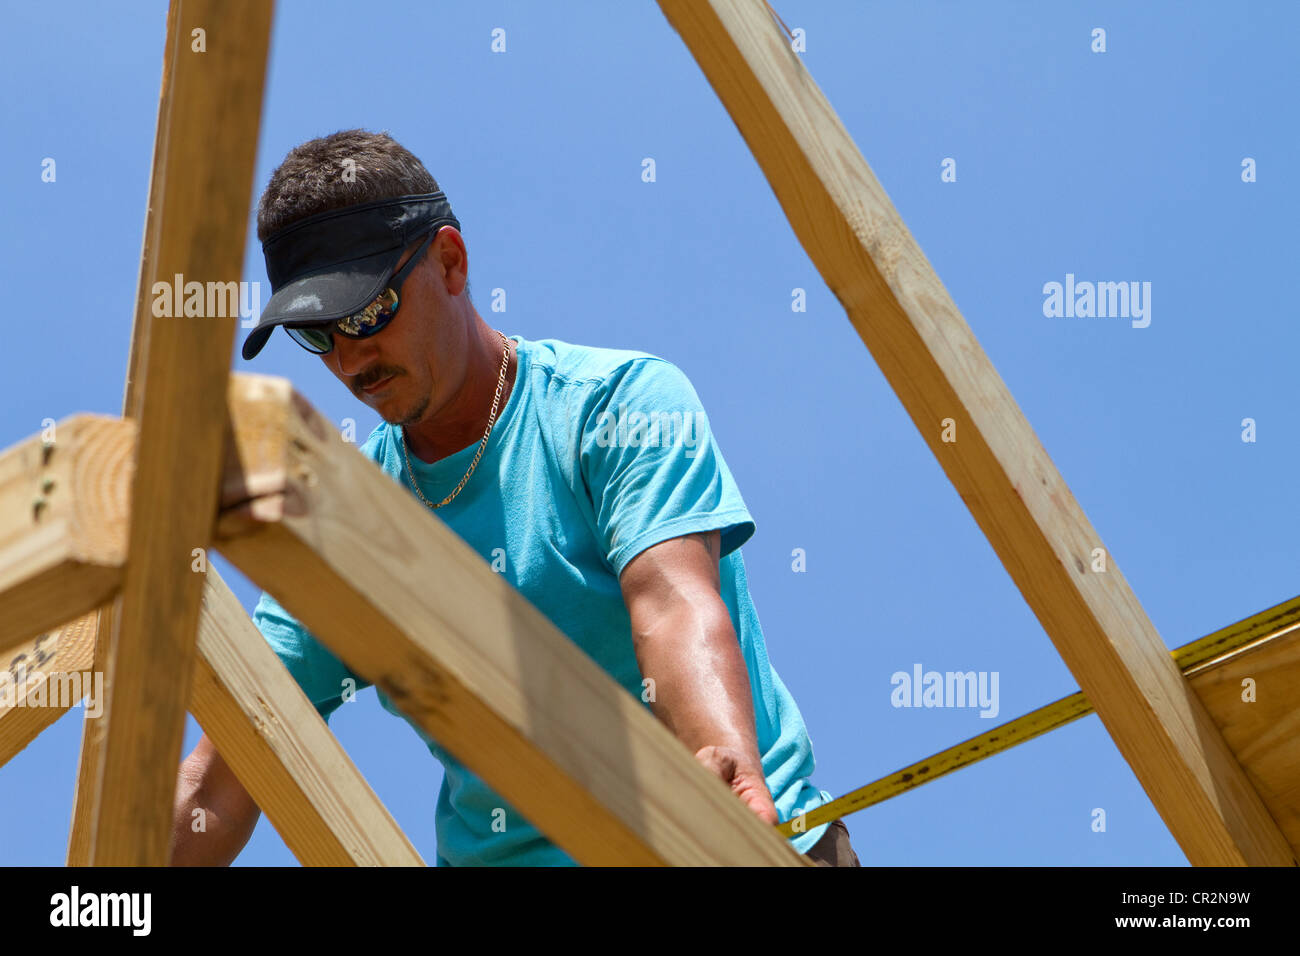 Sheathing Tape Stock Photos & Sheathing Tape Stock Images